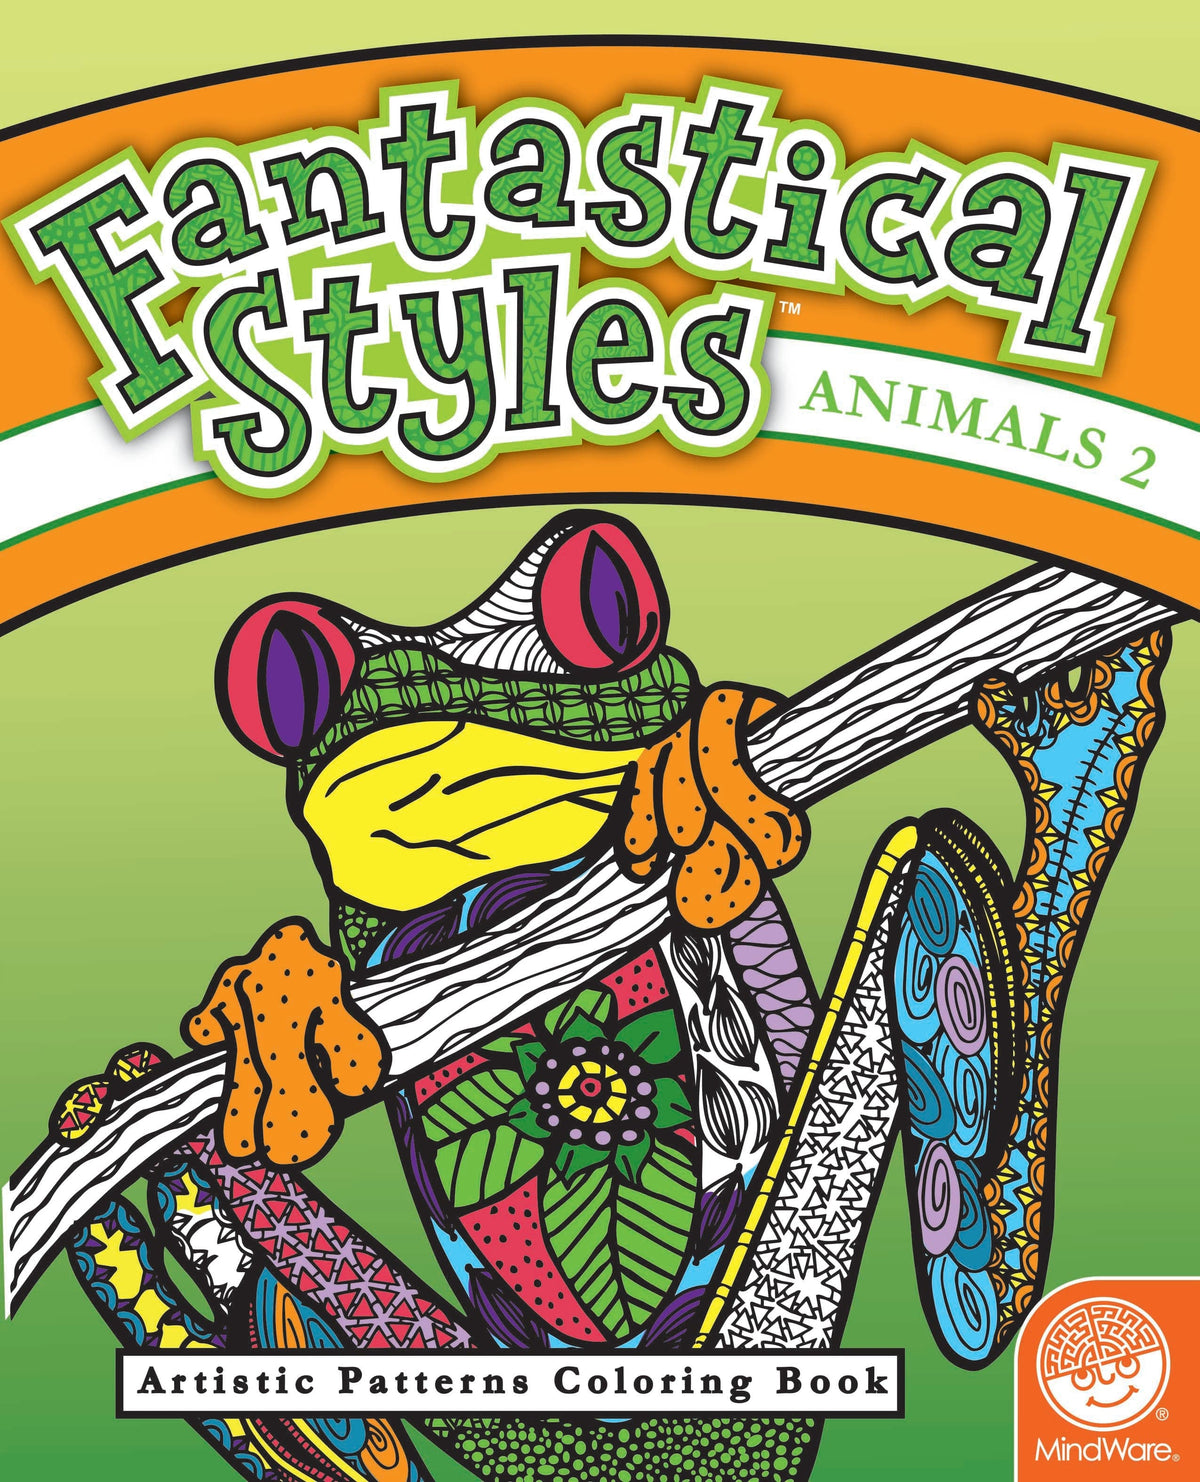 Fantastical Styles - Animals 2